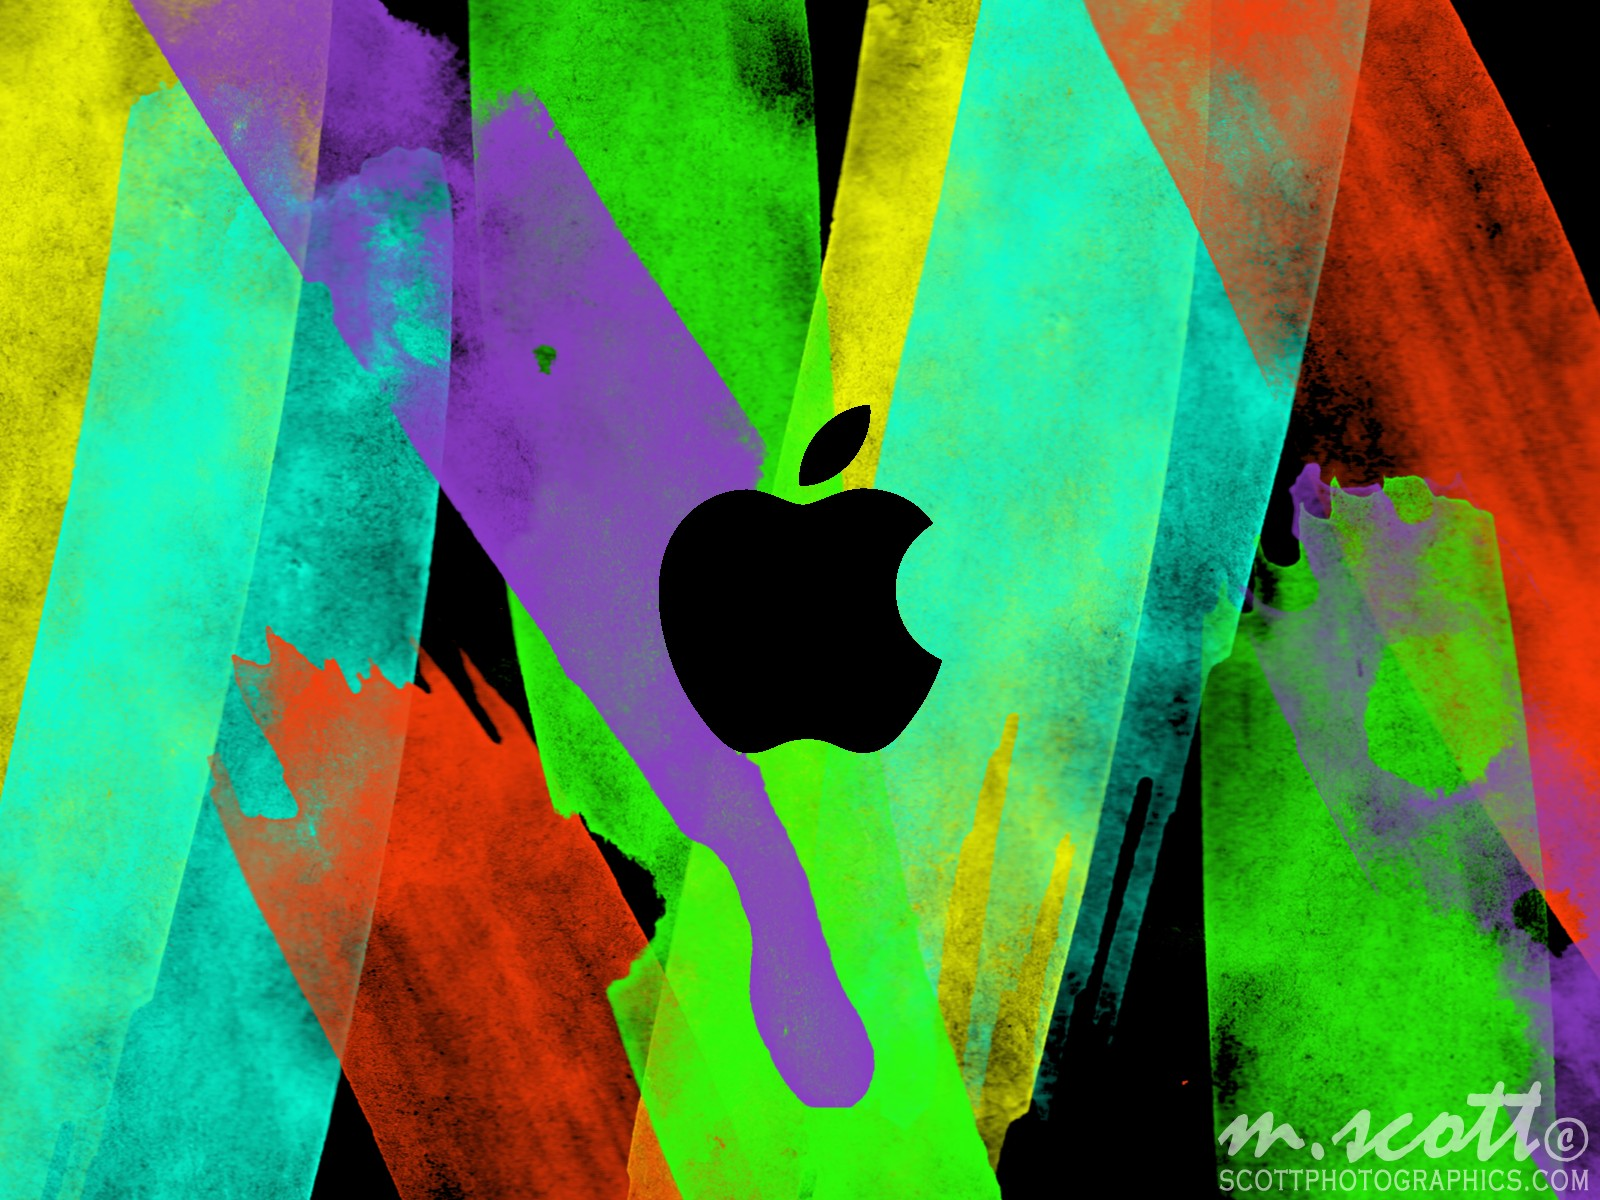 http://www.images.scottphotographics.com/how-to-make-a-water-colour-ubuntu-wallpaper-in-gimp/water-colour-gimp-colours-apple-logo.jpg